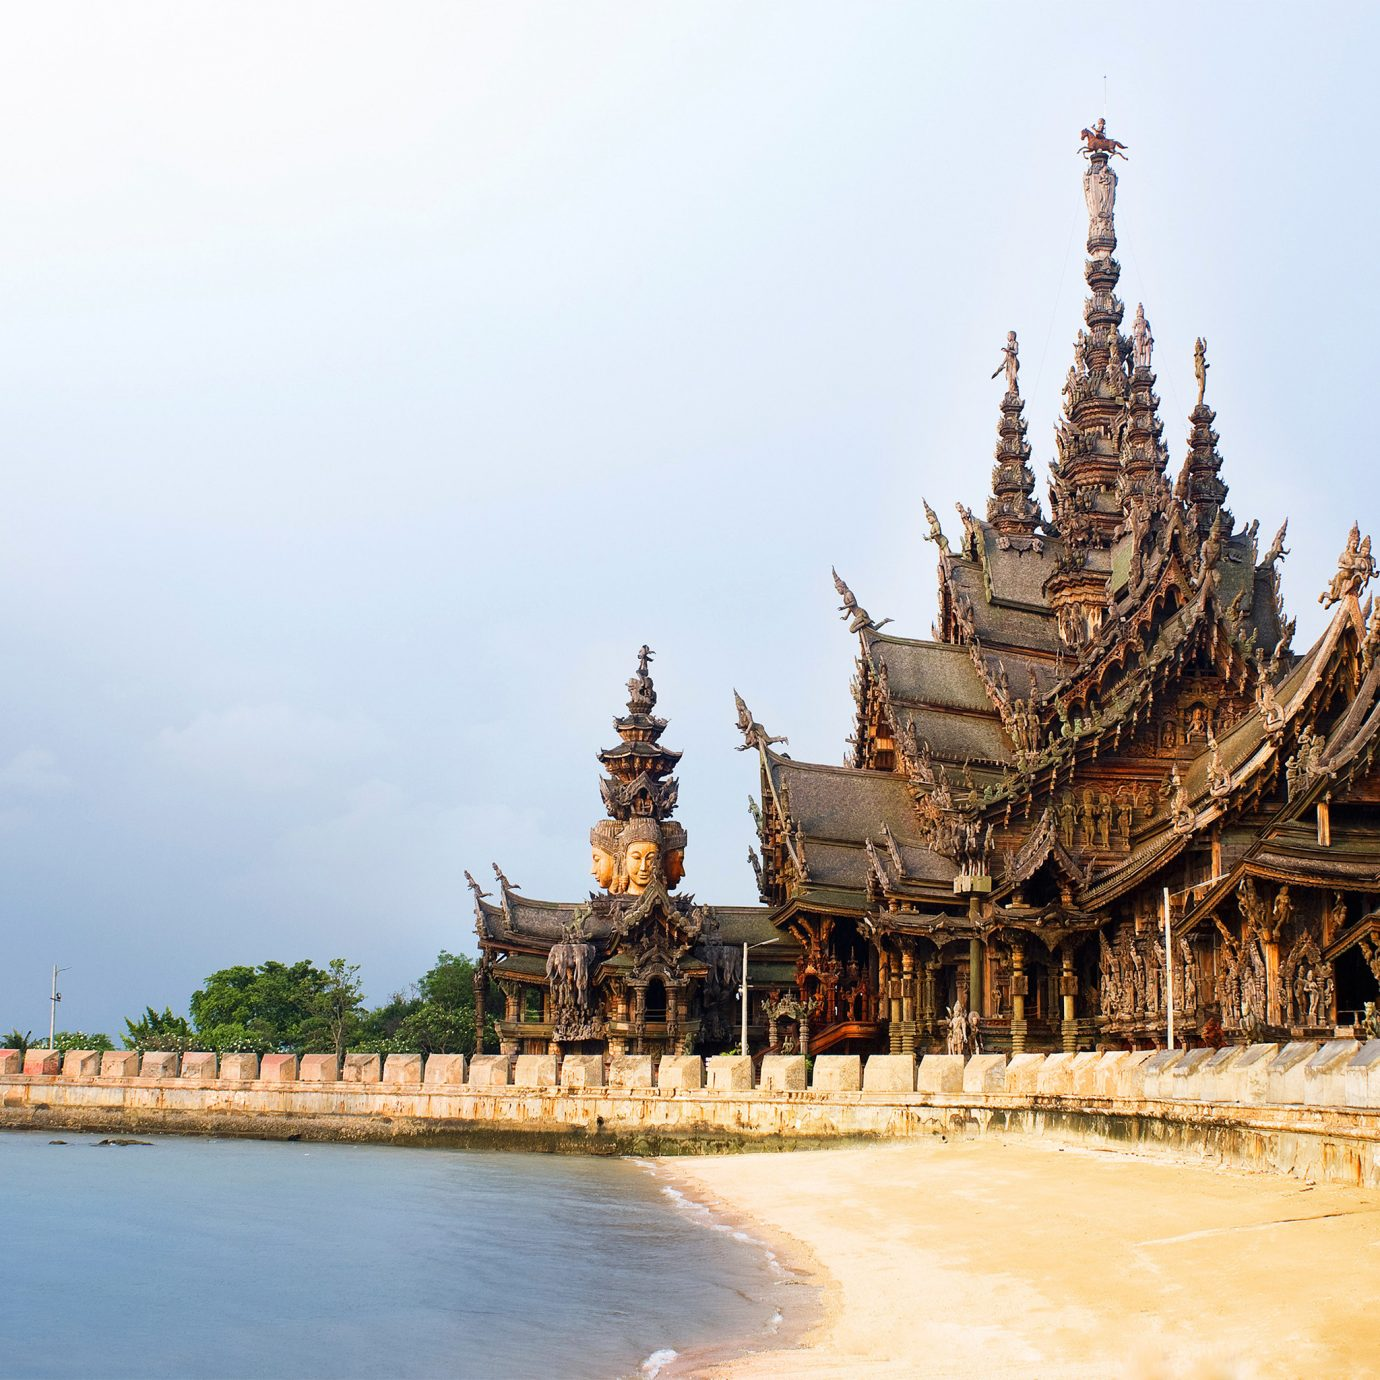 Adventure Architecture Buildings Cultural Landmarks Monuments Waterfront sky landmark building place of worship tower temple pagoda wat palace hindu temple ancient history